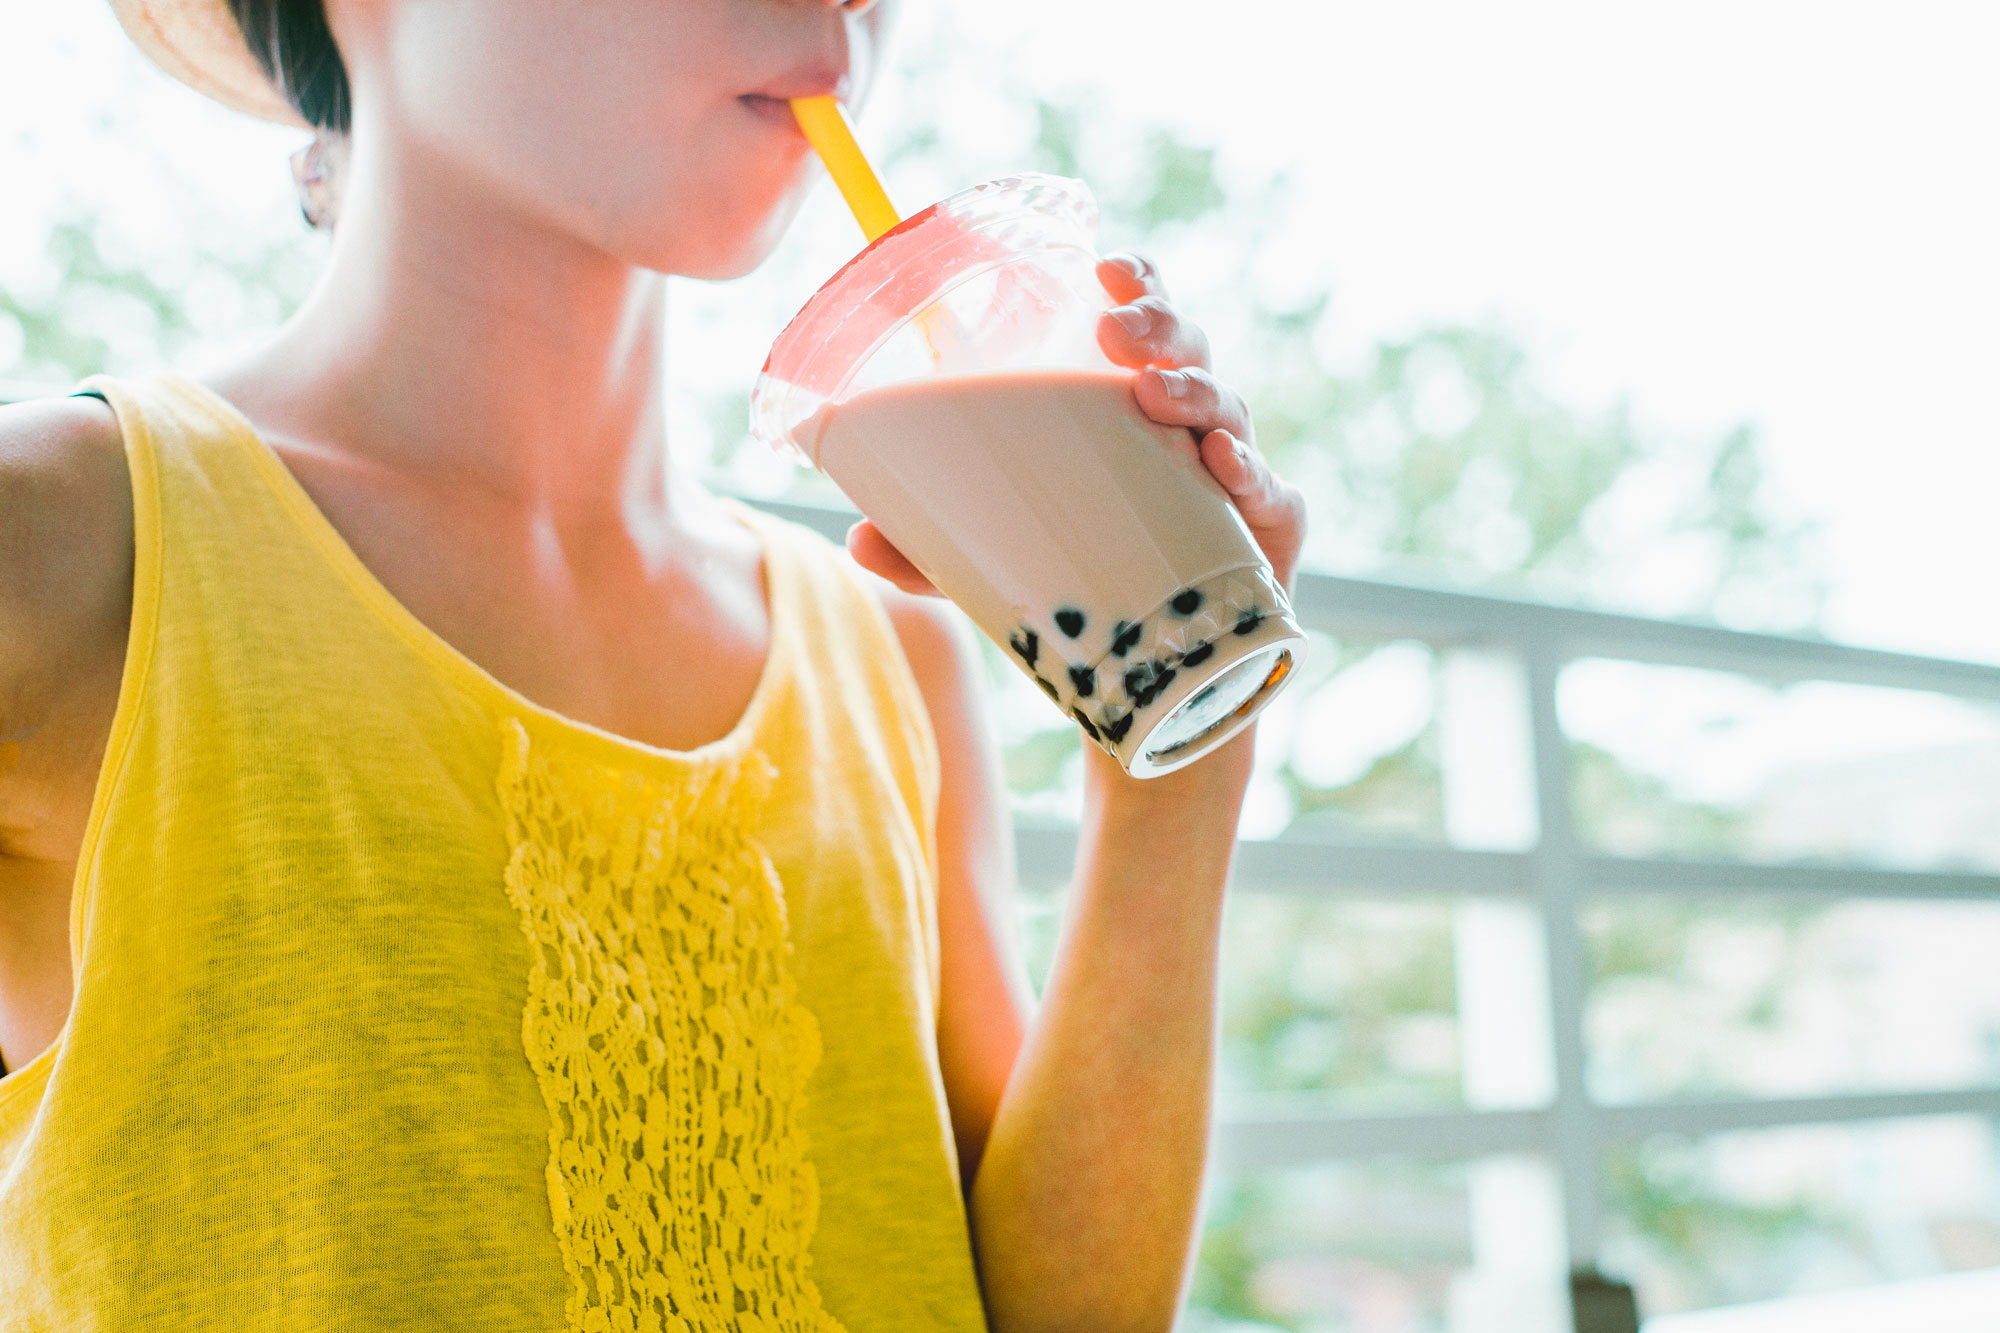 A person happily drinking boba tea.